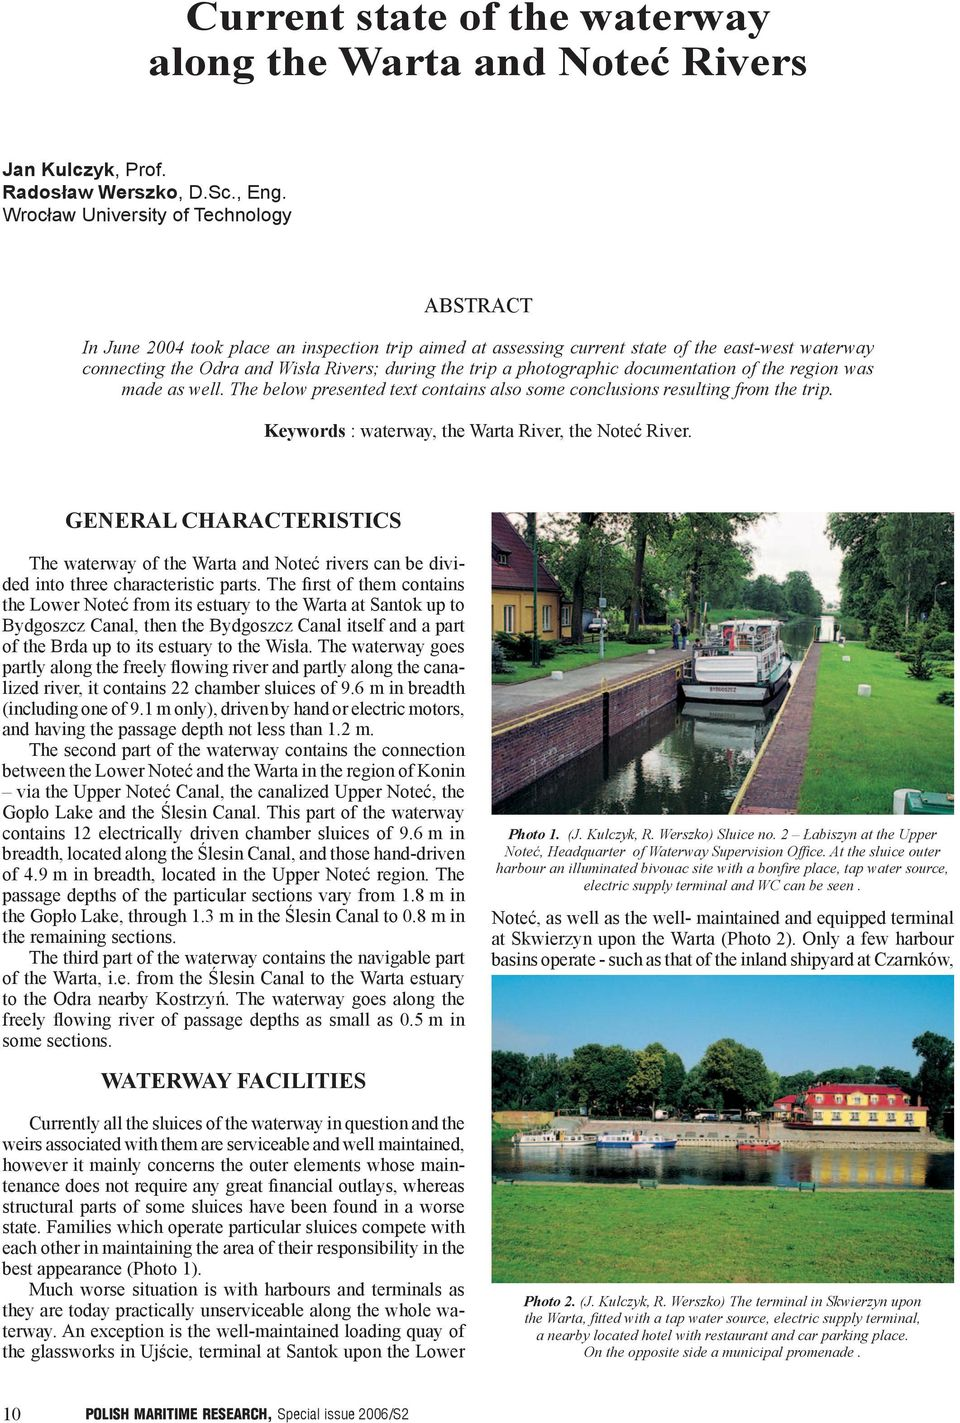 photographic documentation of the region was made as well. The below presented text contains also some conclusions resulting from the trip. Keywords : waterway, the Warta River, the Noteć River.